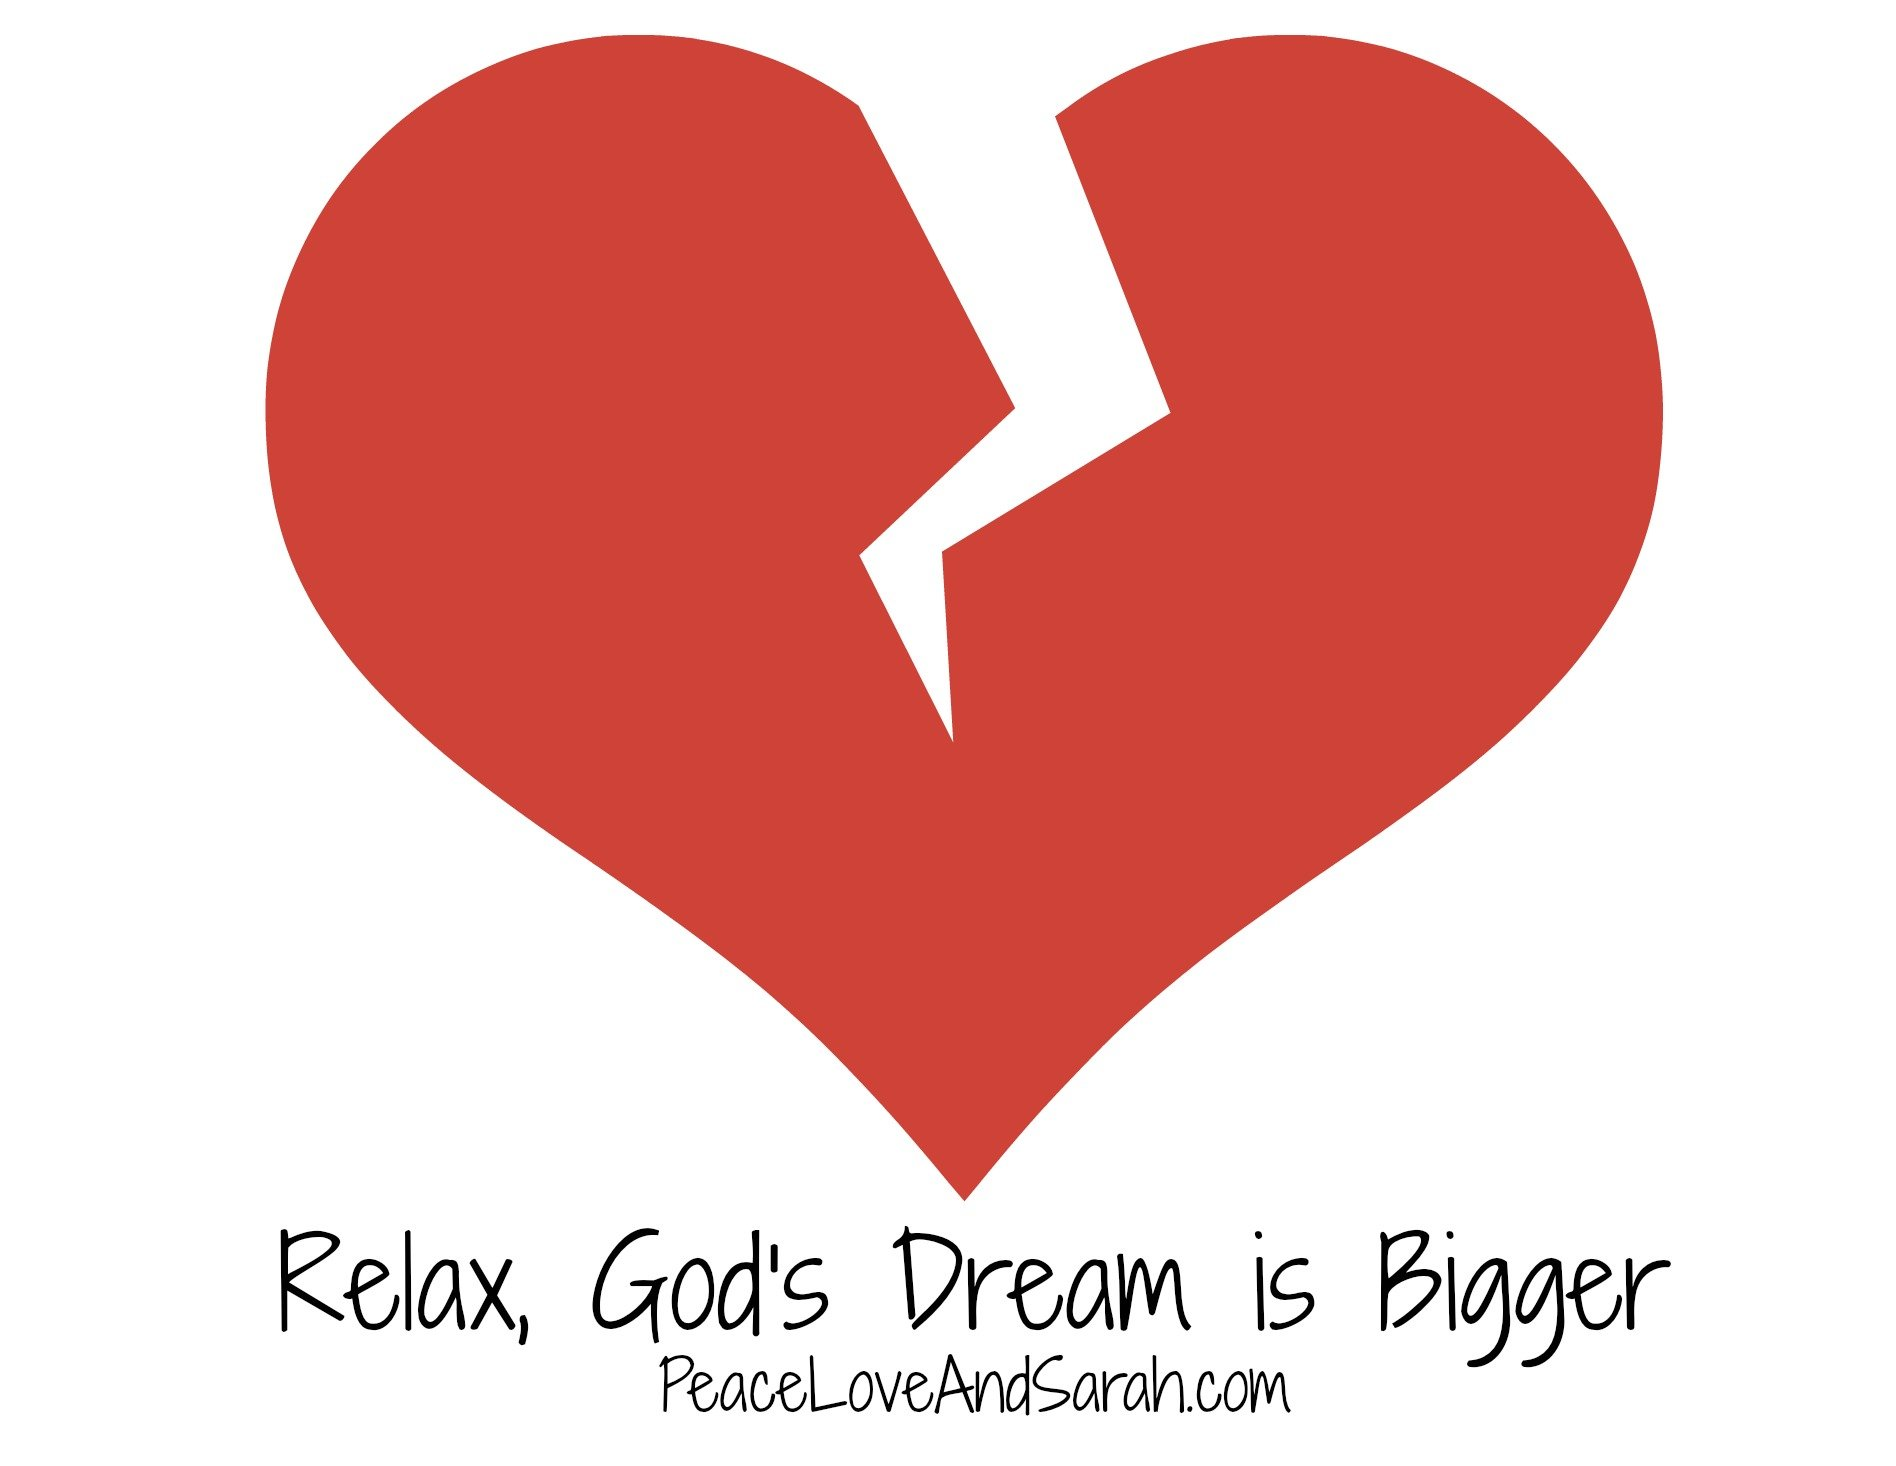 Relax, God's Dream is Bigger #peace